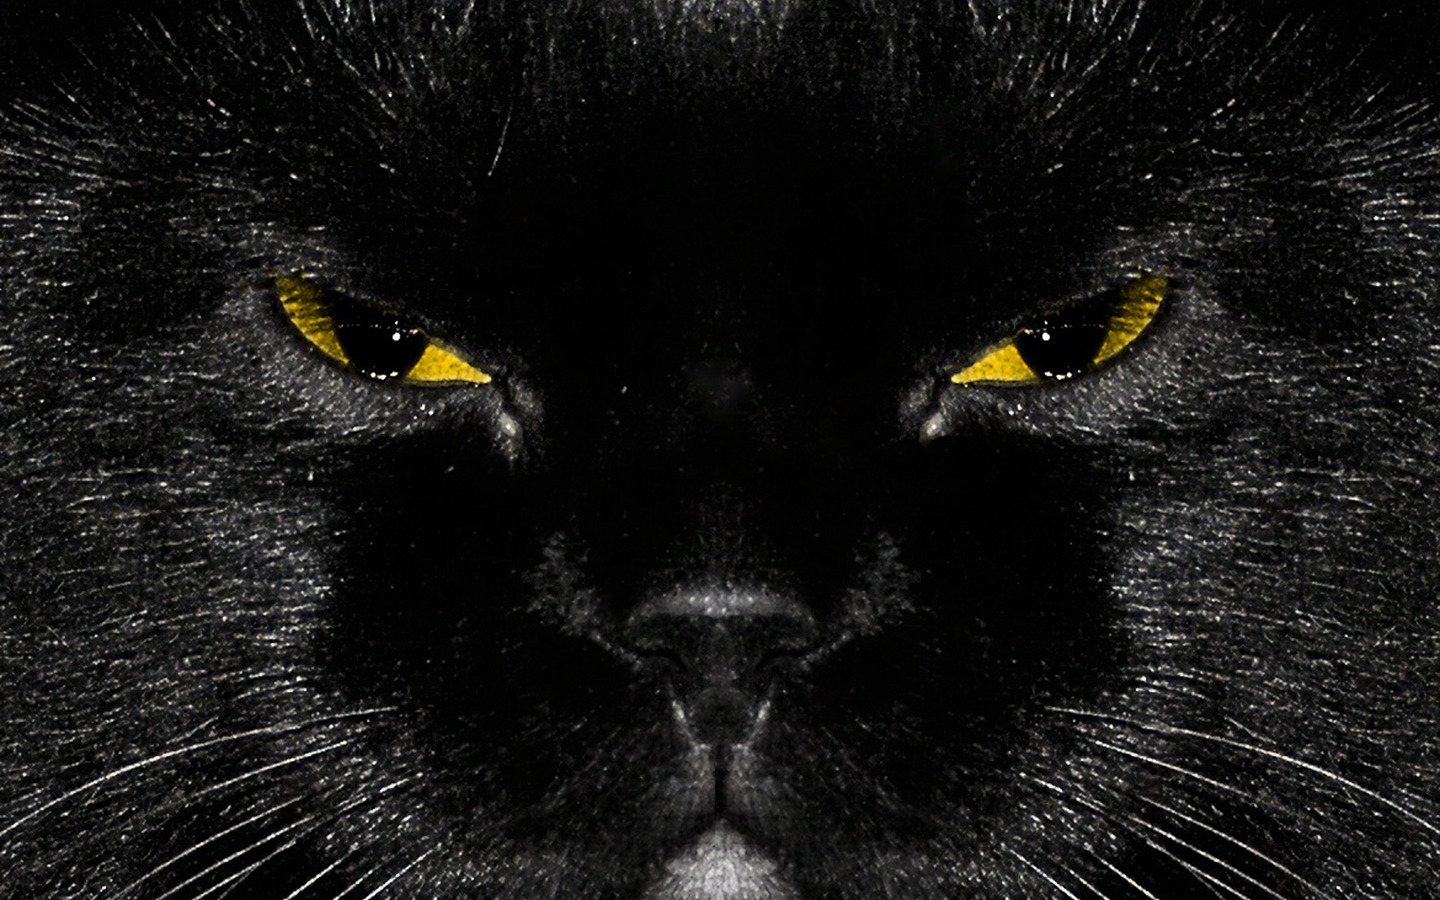 Black Cat HD Wallpapers Black Cat High Definition Wallpaper  DOWNLOAD